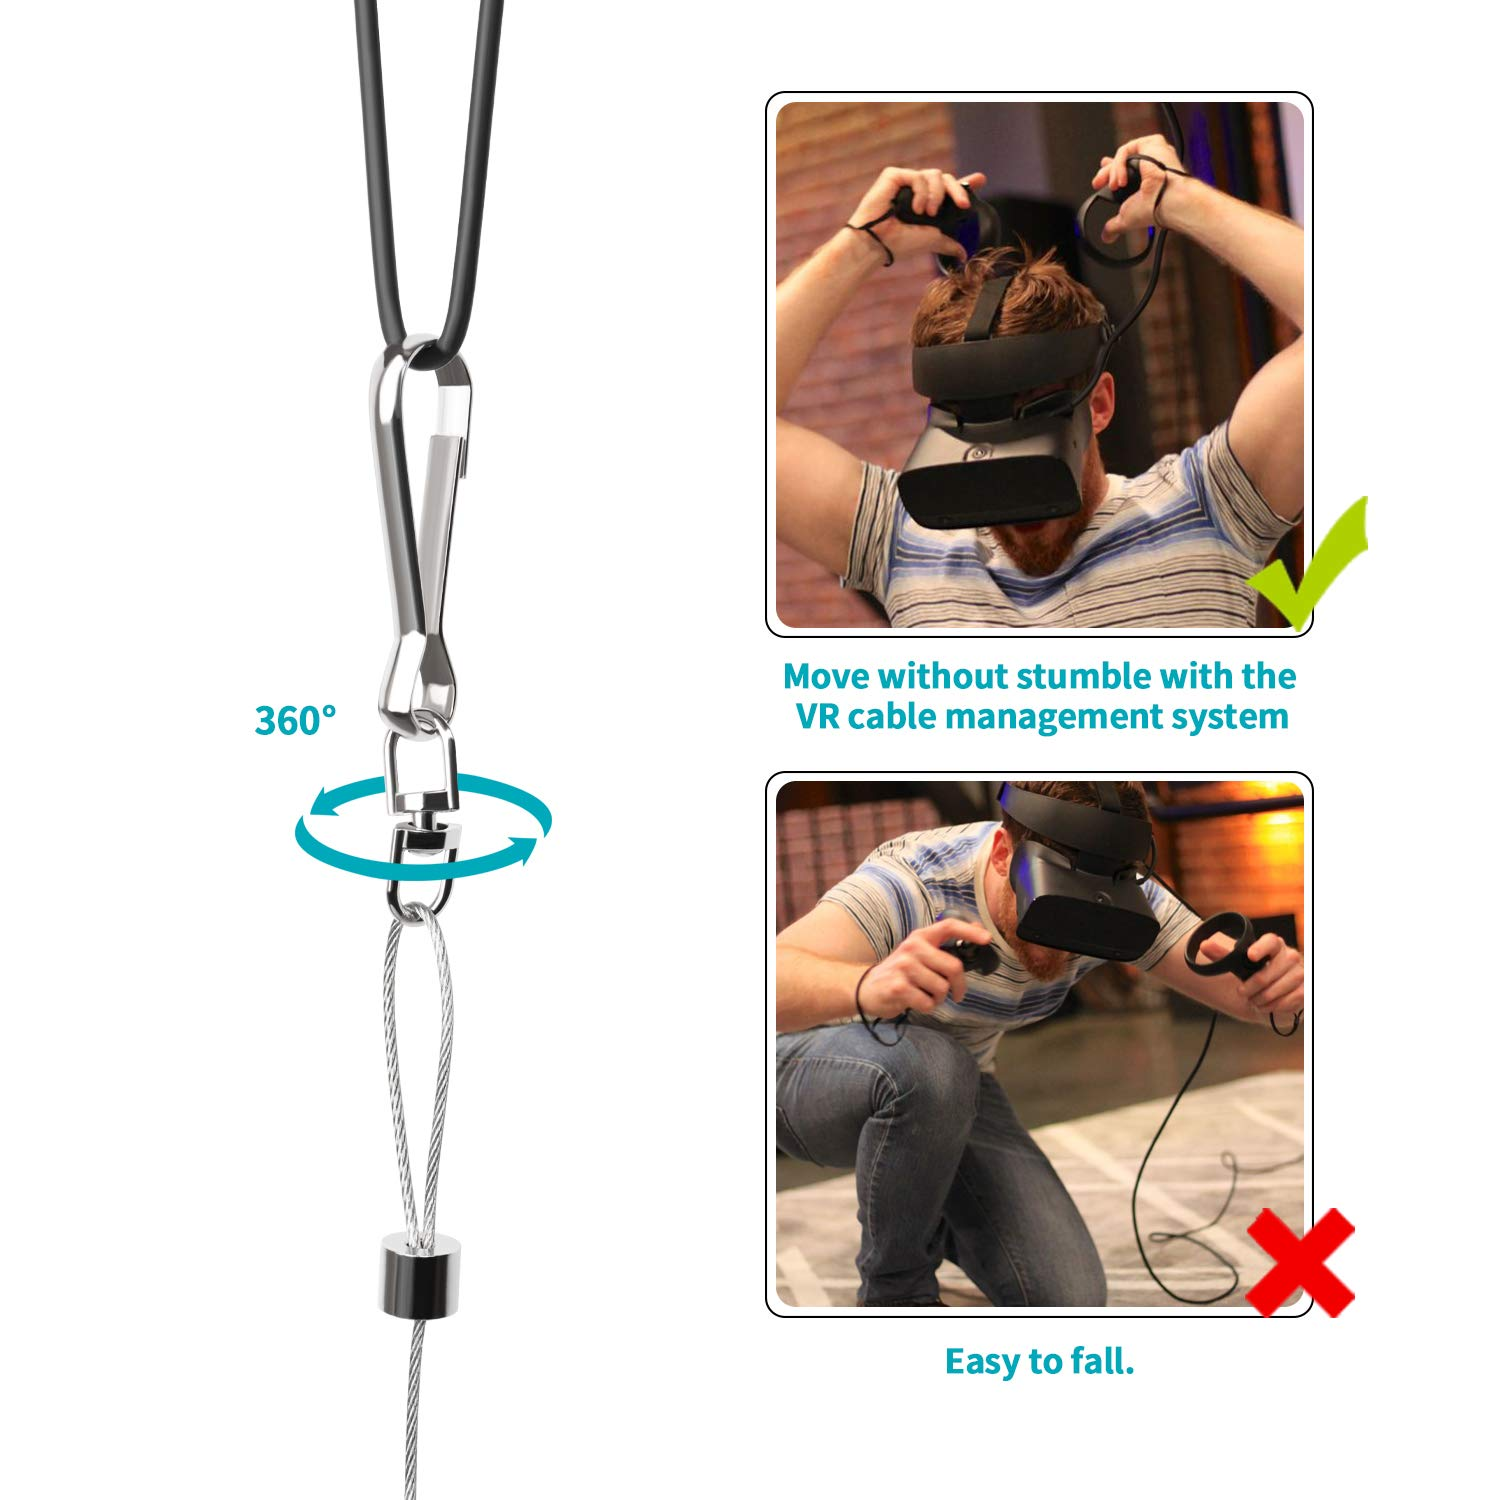 VeeR VR Cable Management Virtual Reality Wire Ceiling Pulley System for Oculus Rift S//Lenovo//Playstation VR//HTC Vive//HTC Vive Pro//Samsung Odyssey VR Accessories